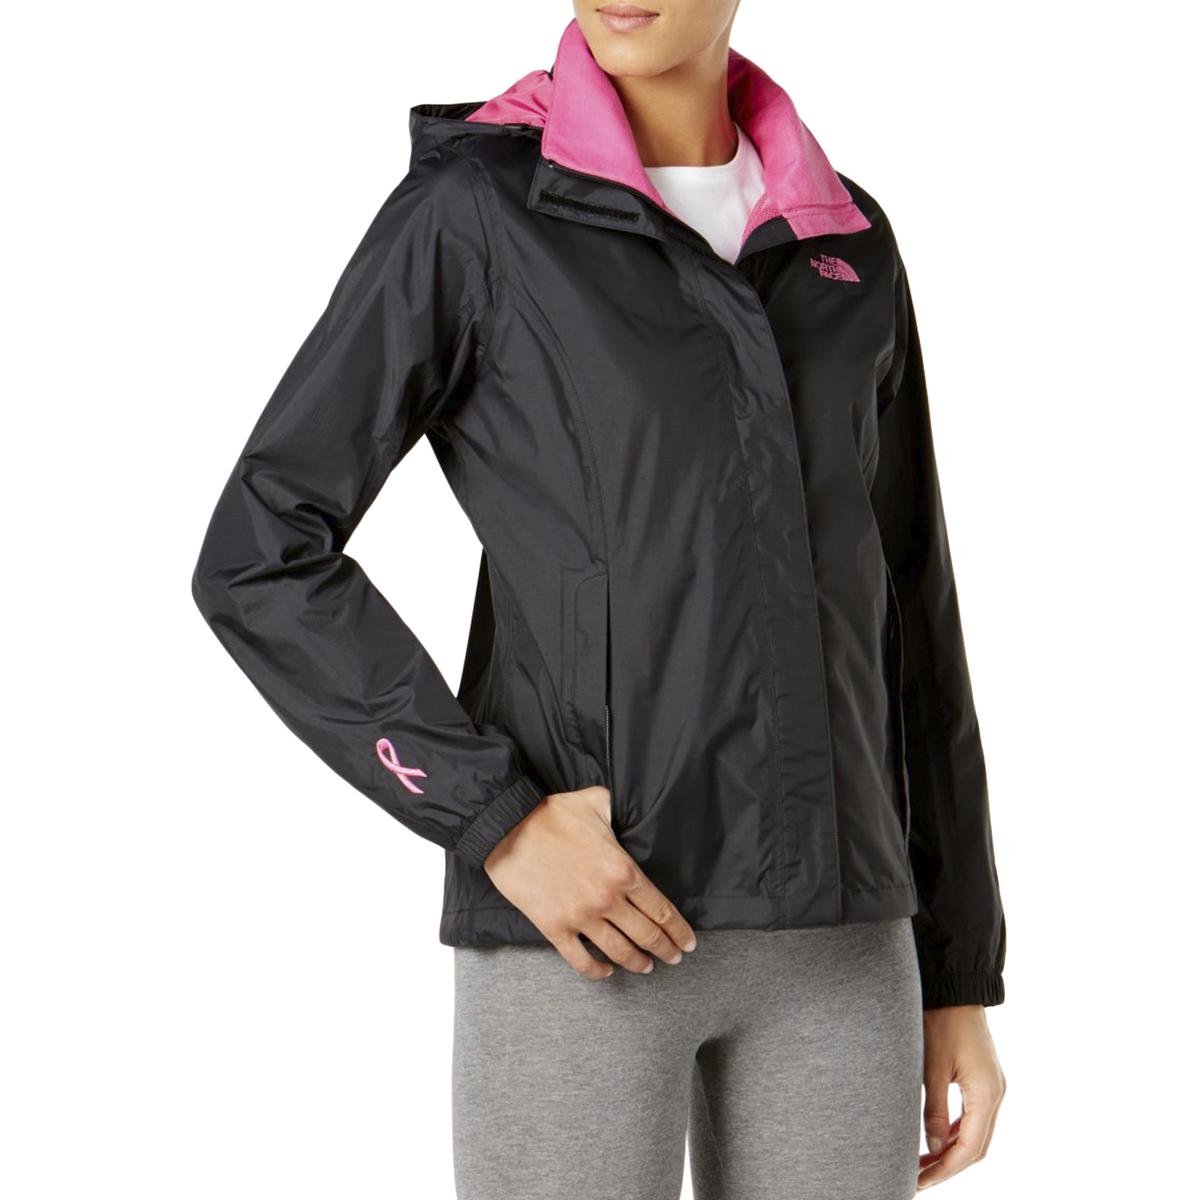 8399f83f3e Details about The North Face Womens Resolve Black Colorblock Parka Coat  Jacket M BHFO 1422